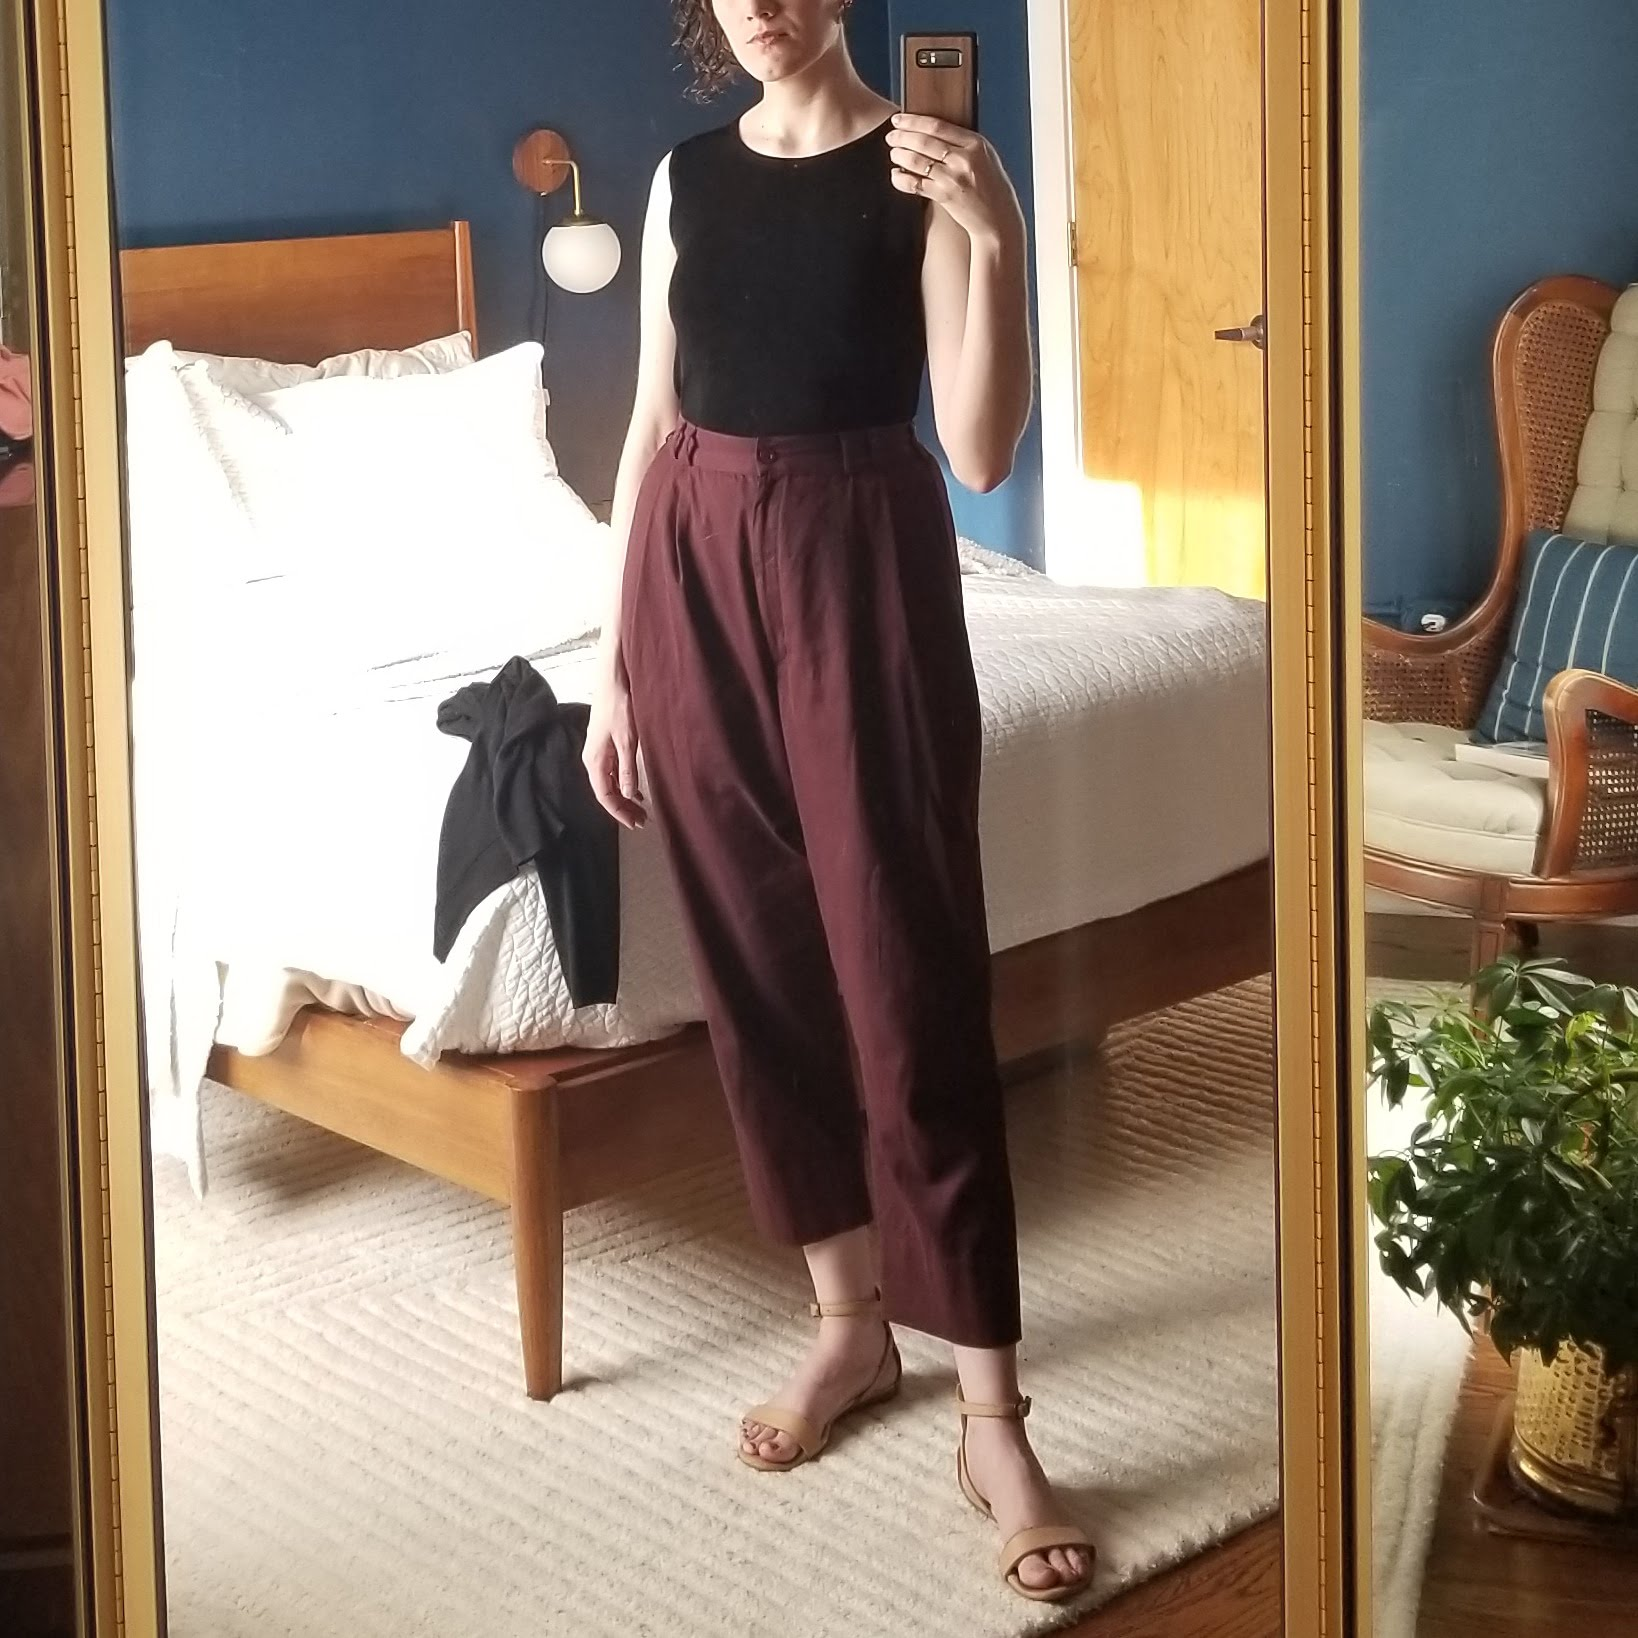 Friday - April 13, 2018I'm liking these pants more! I mentioned having doubts the last time I wore them (Wednesday, March 28, 2018) but maybe the weather just wasn't right. Today was nice and warm and I wore them with my favorite beige sandals. The crop seems to make more sense with sandals. They are definitely a warm weather pant. I like them with this fitted top tank so that the pleats can do their pleat thing without distraction.